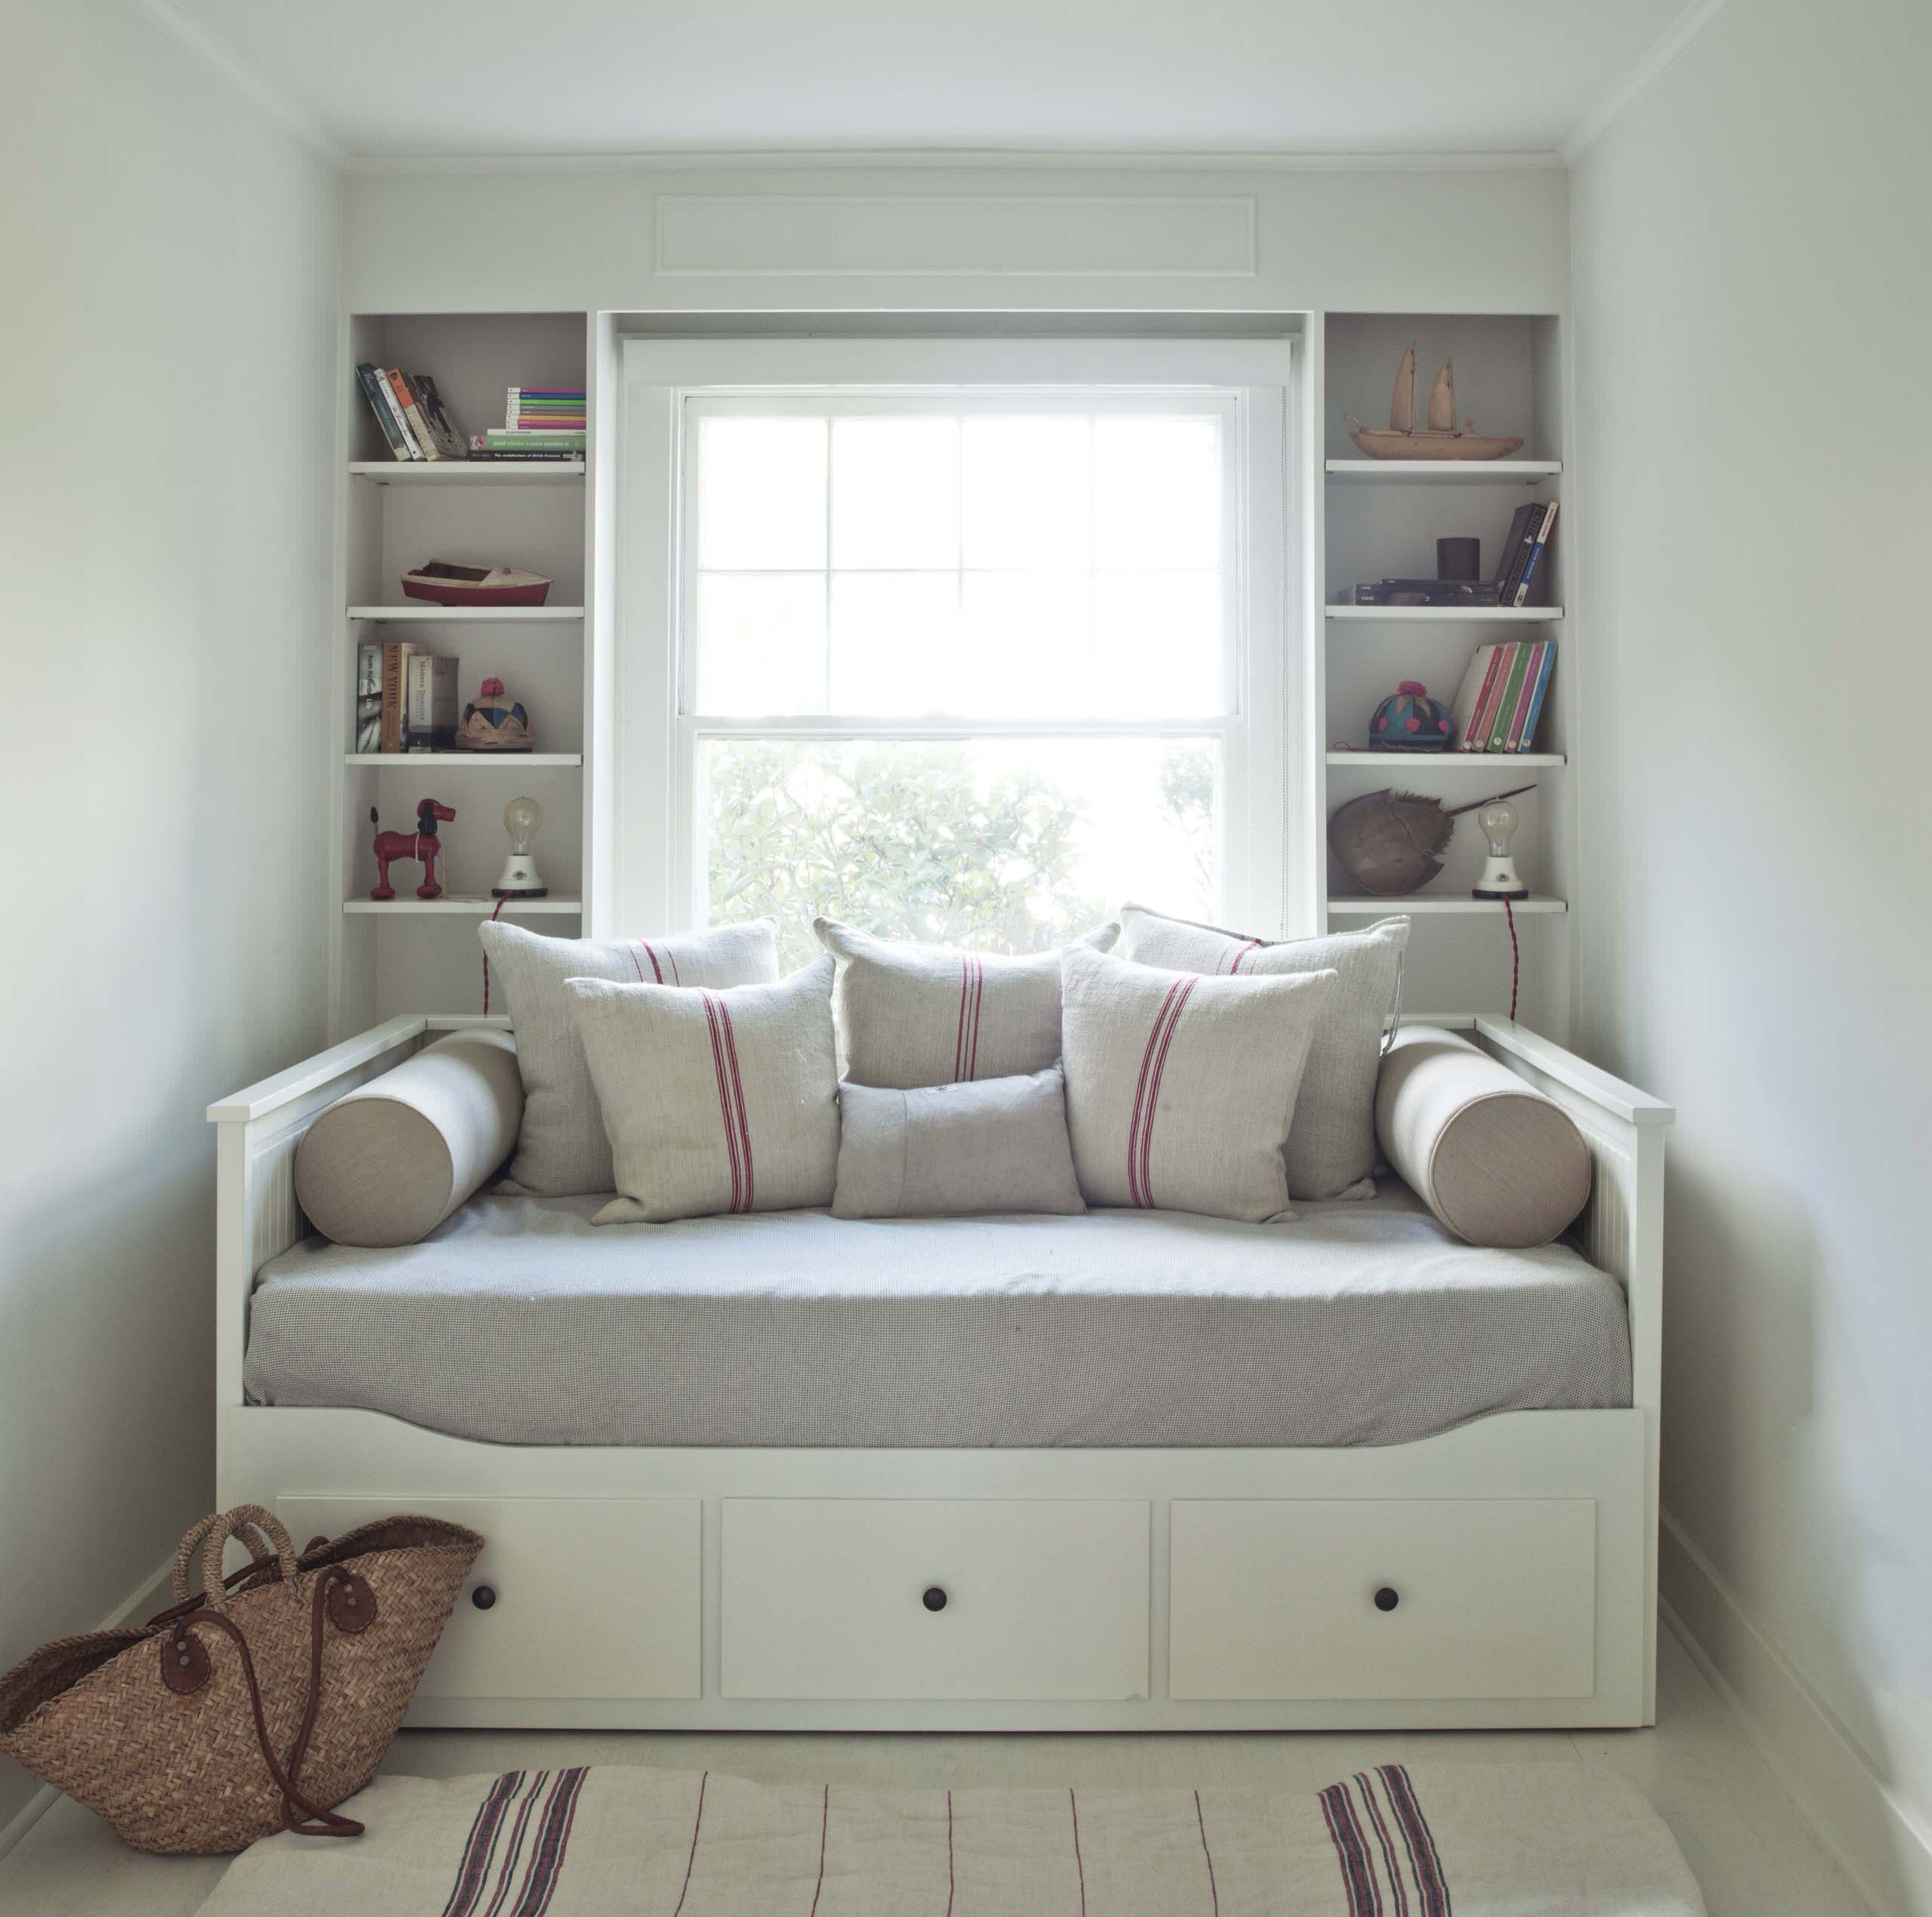 Image of: Guest Room Daybed Houzz